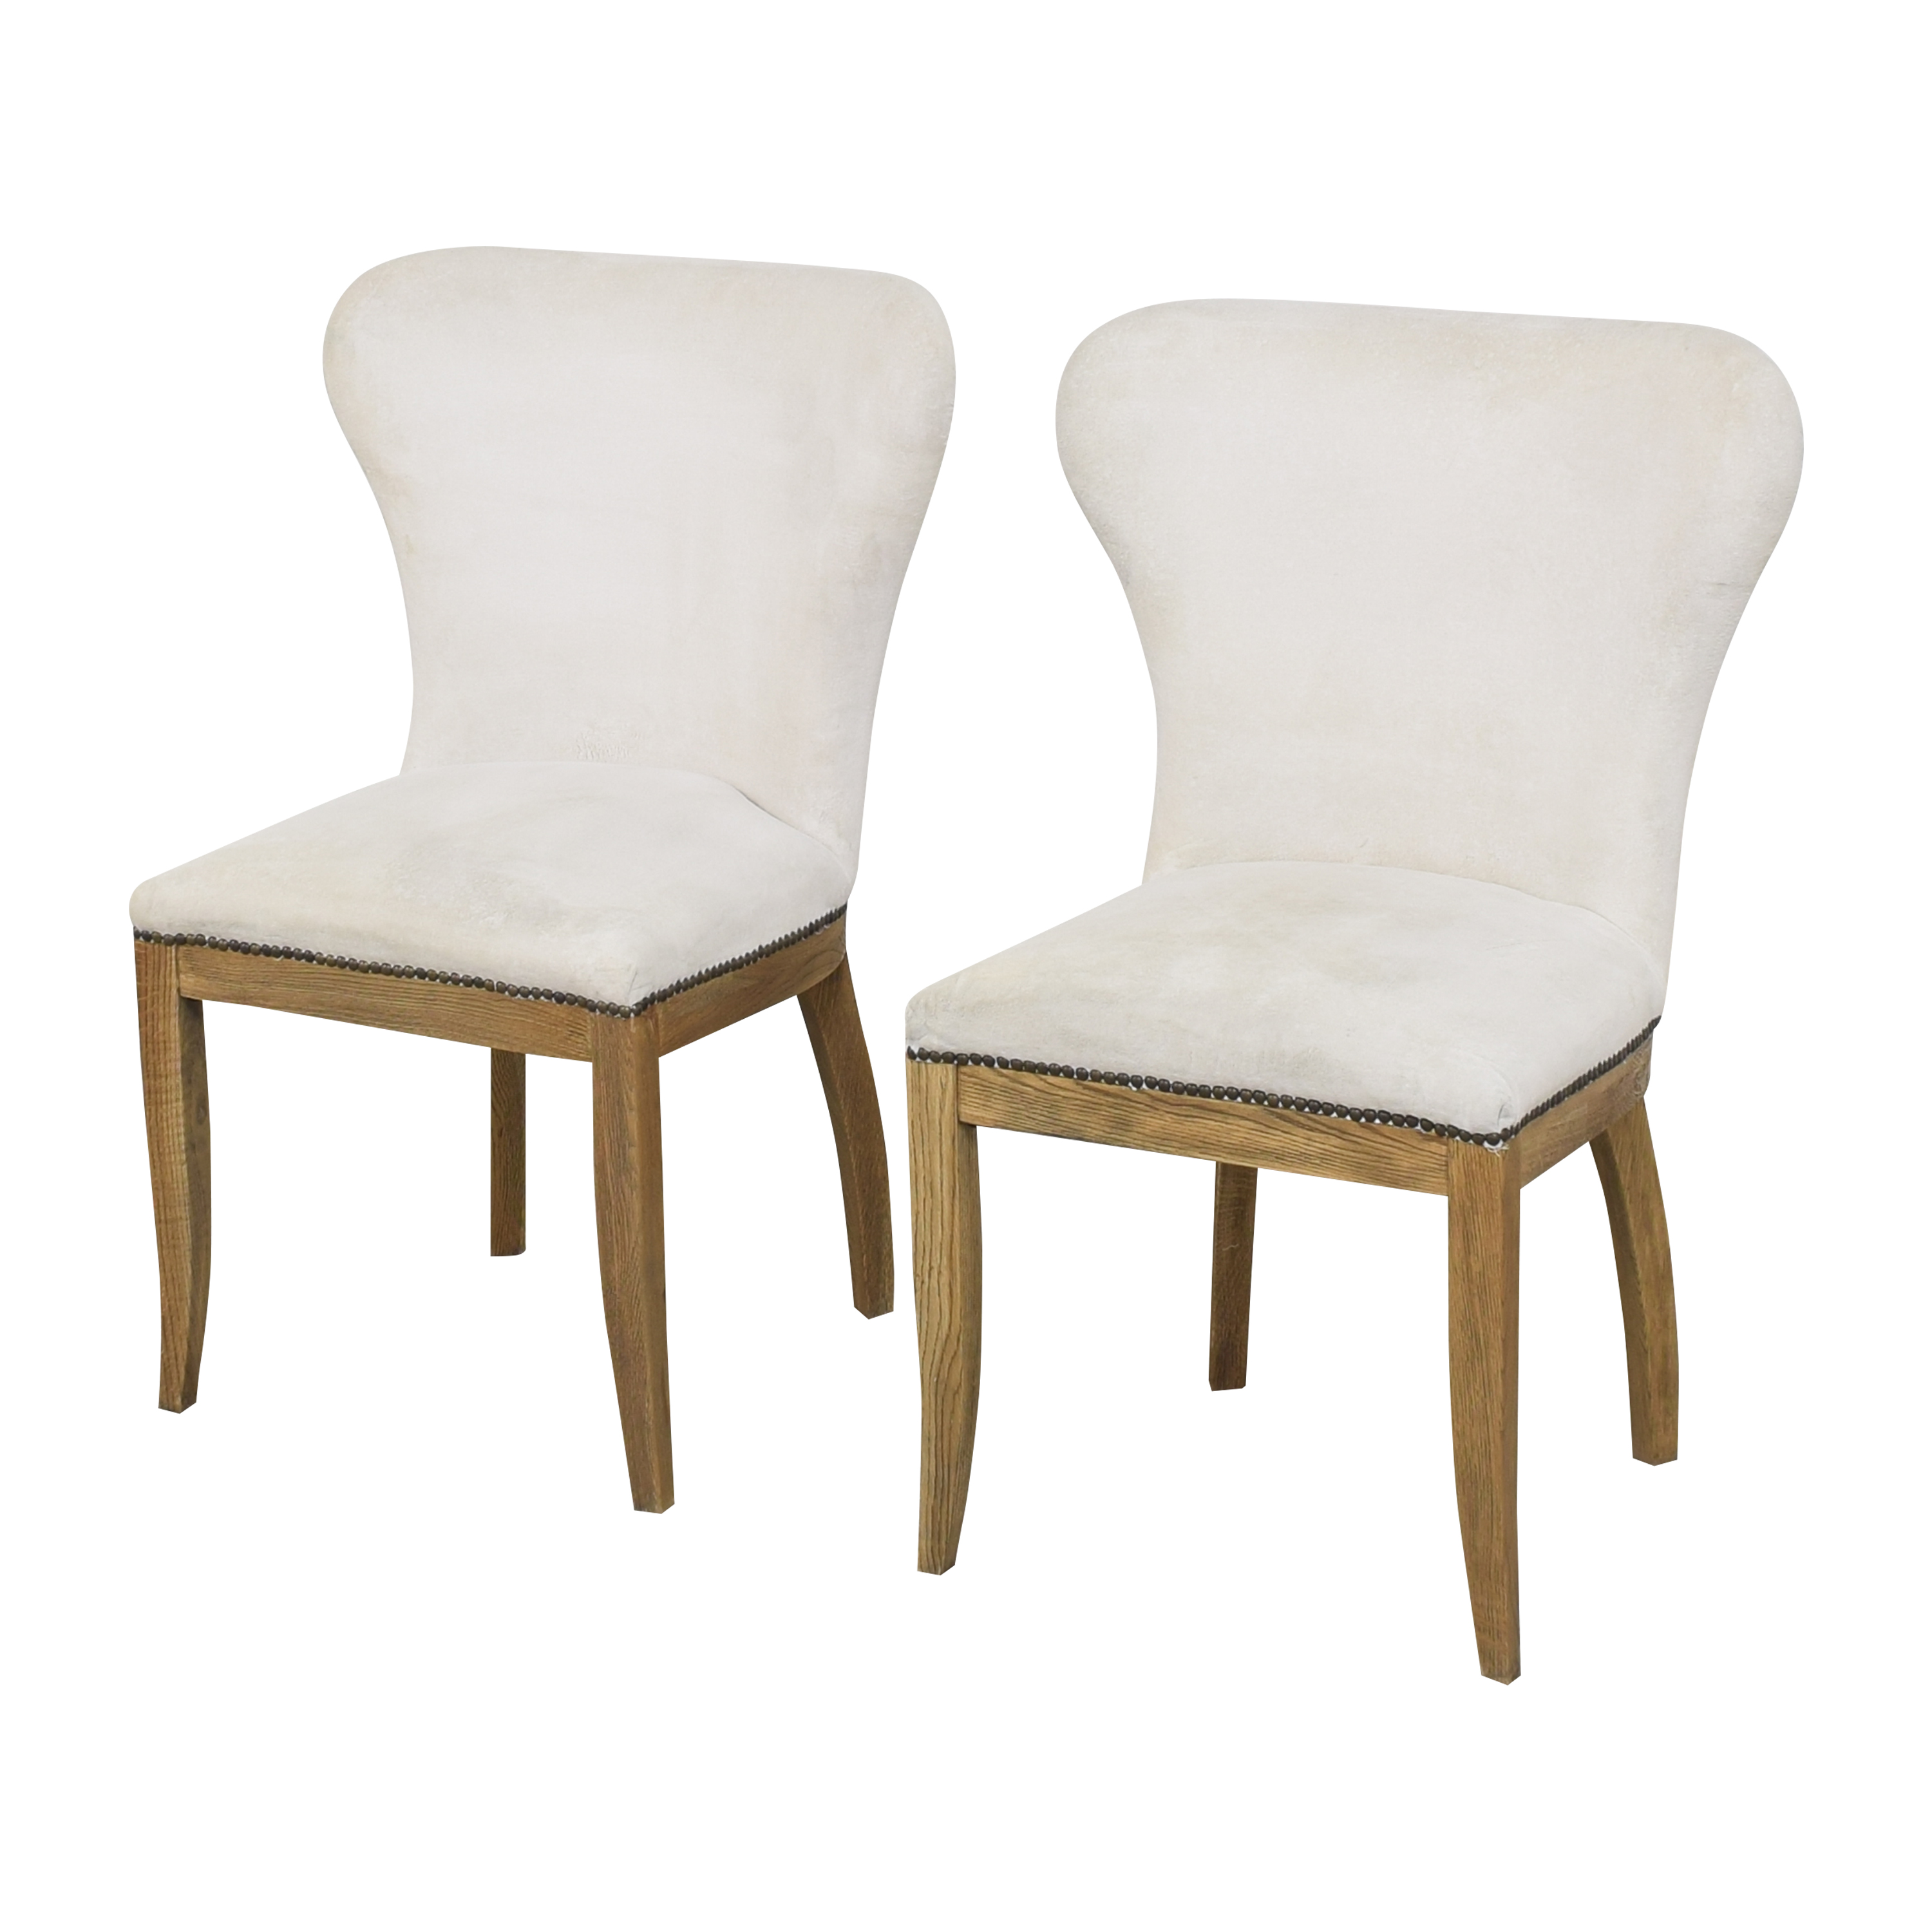 Restoration Hardware Restoration Hardware Upholstered Dining Chairs second hand